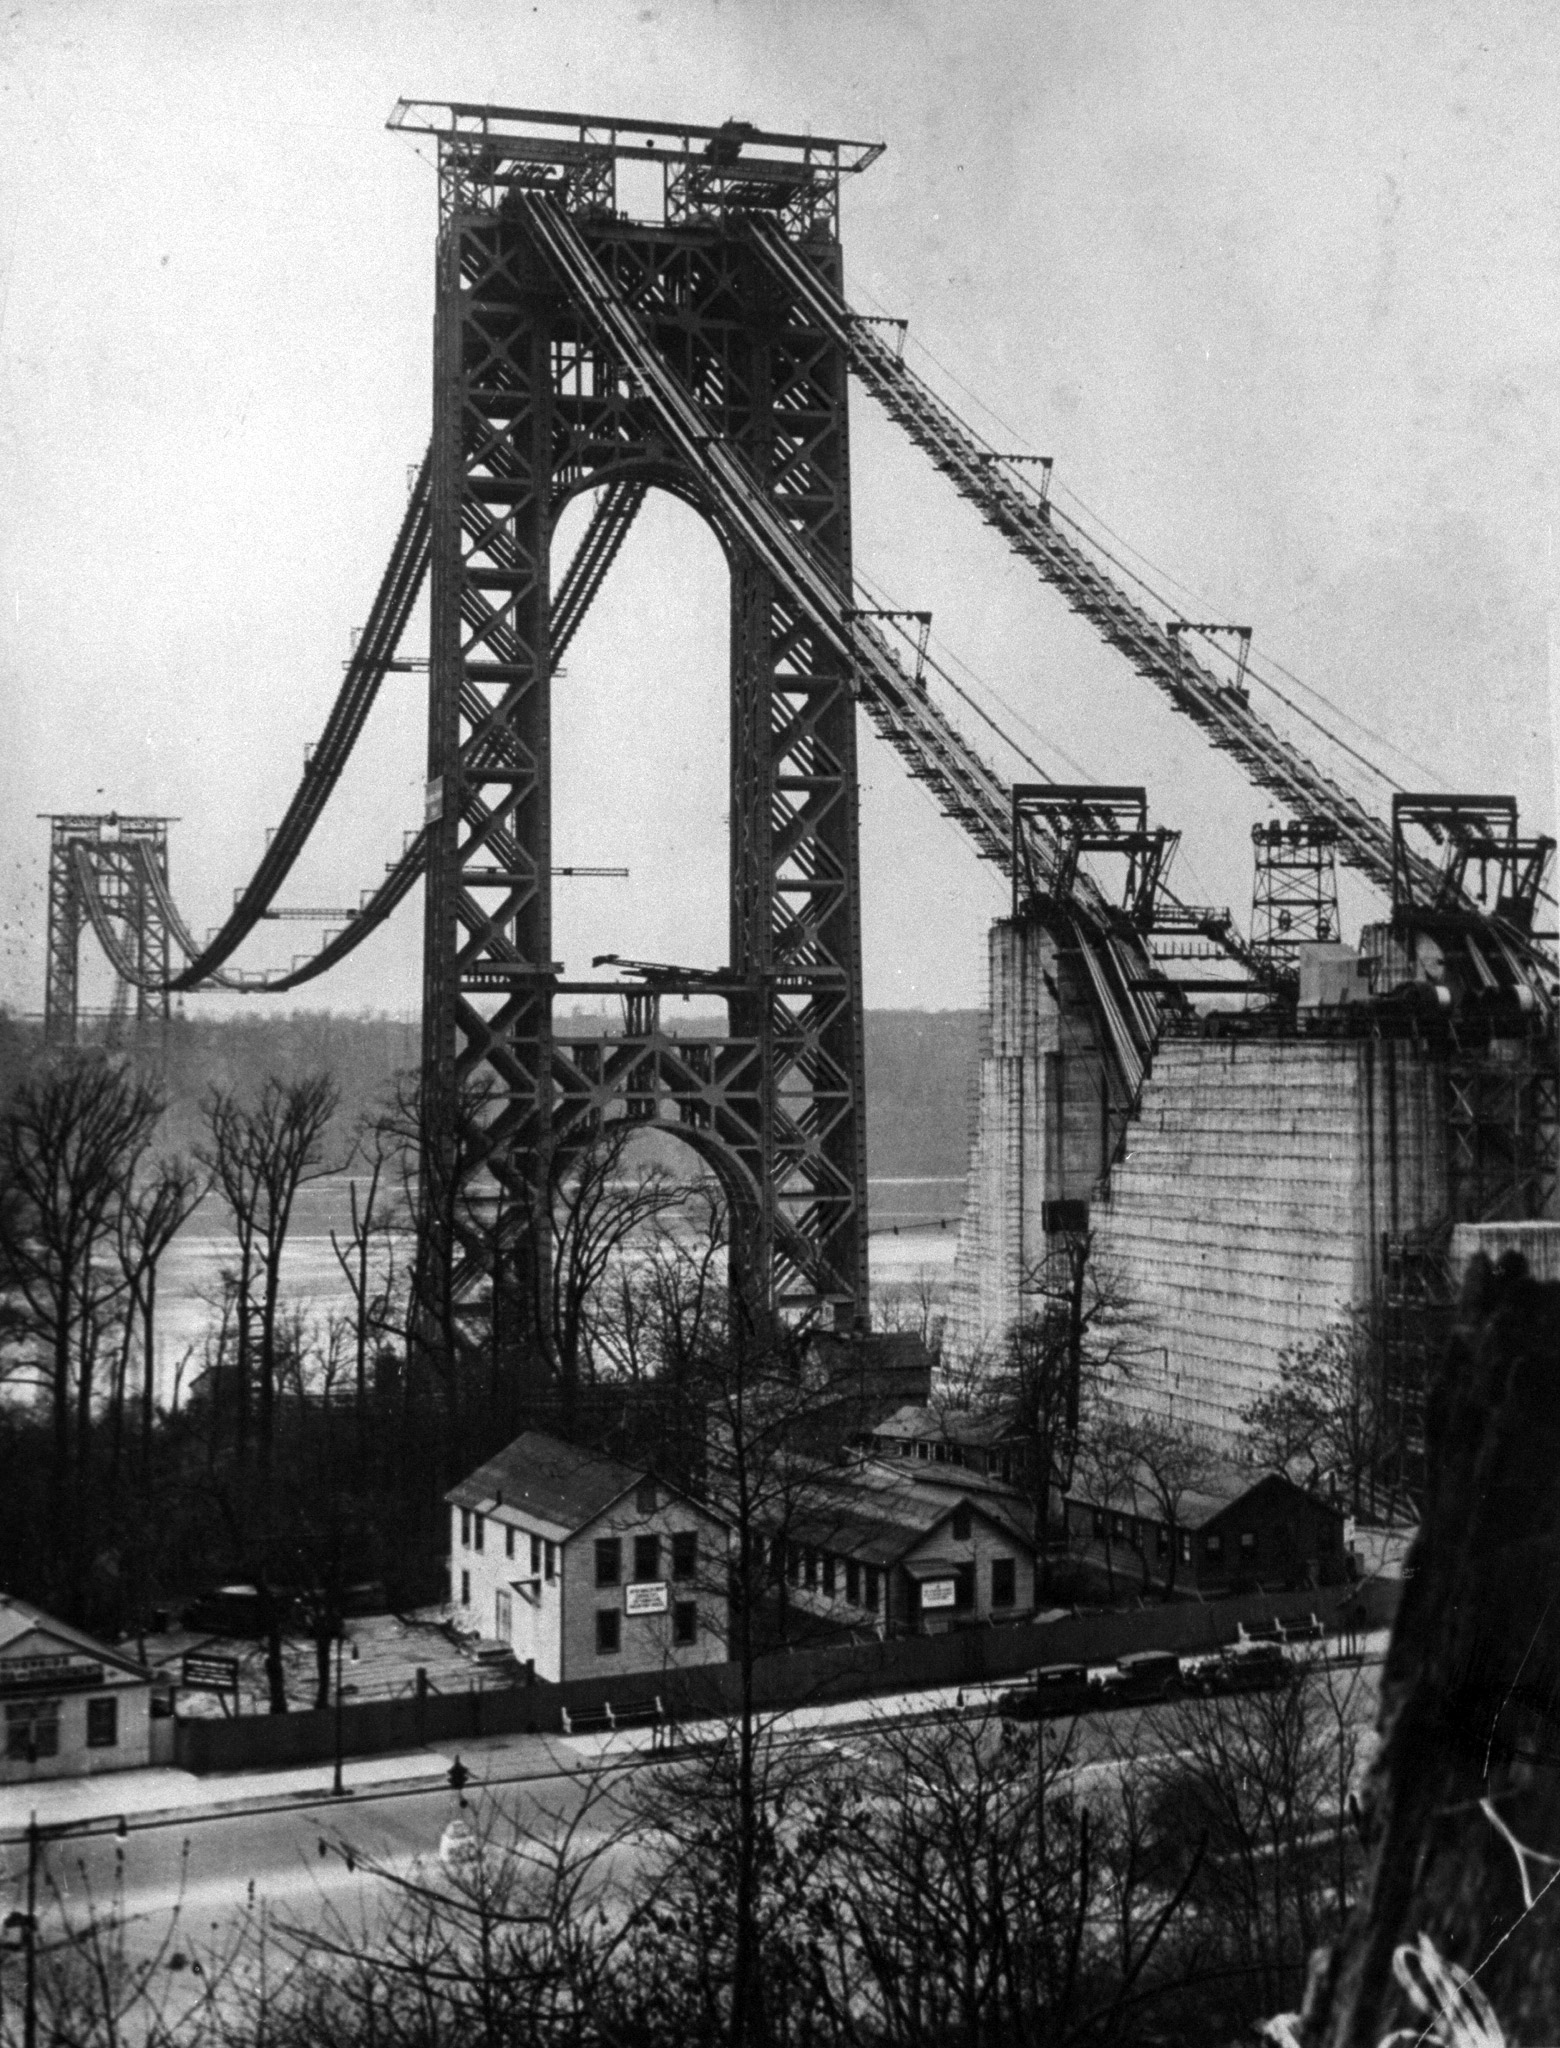 Main towers and cables of the George Washington Bridge under construction that linked New York to New Jersey when it opened, the longest suspension bridge in the world.  1929.